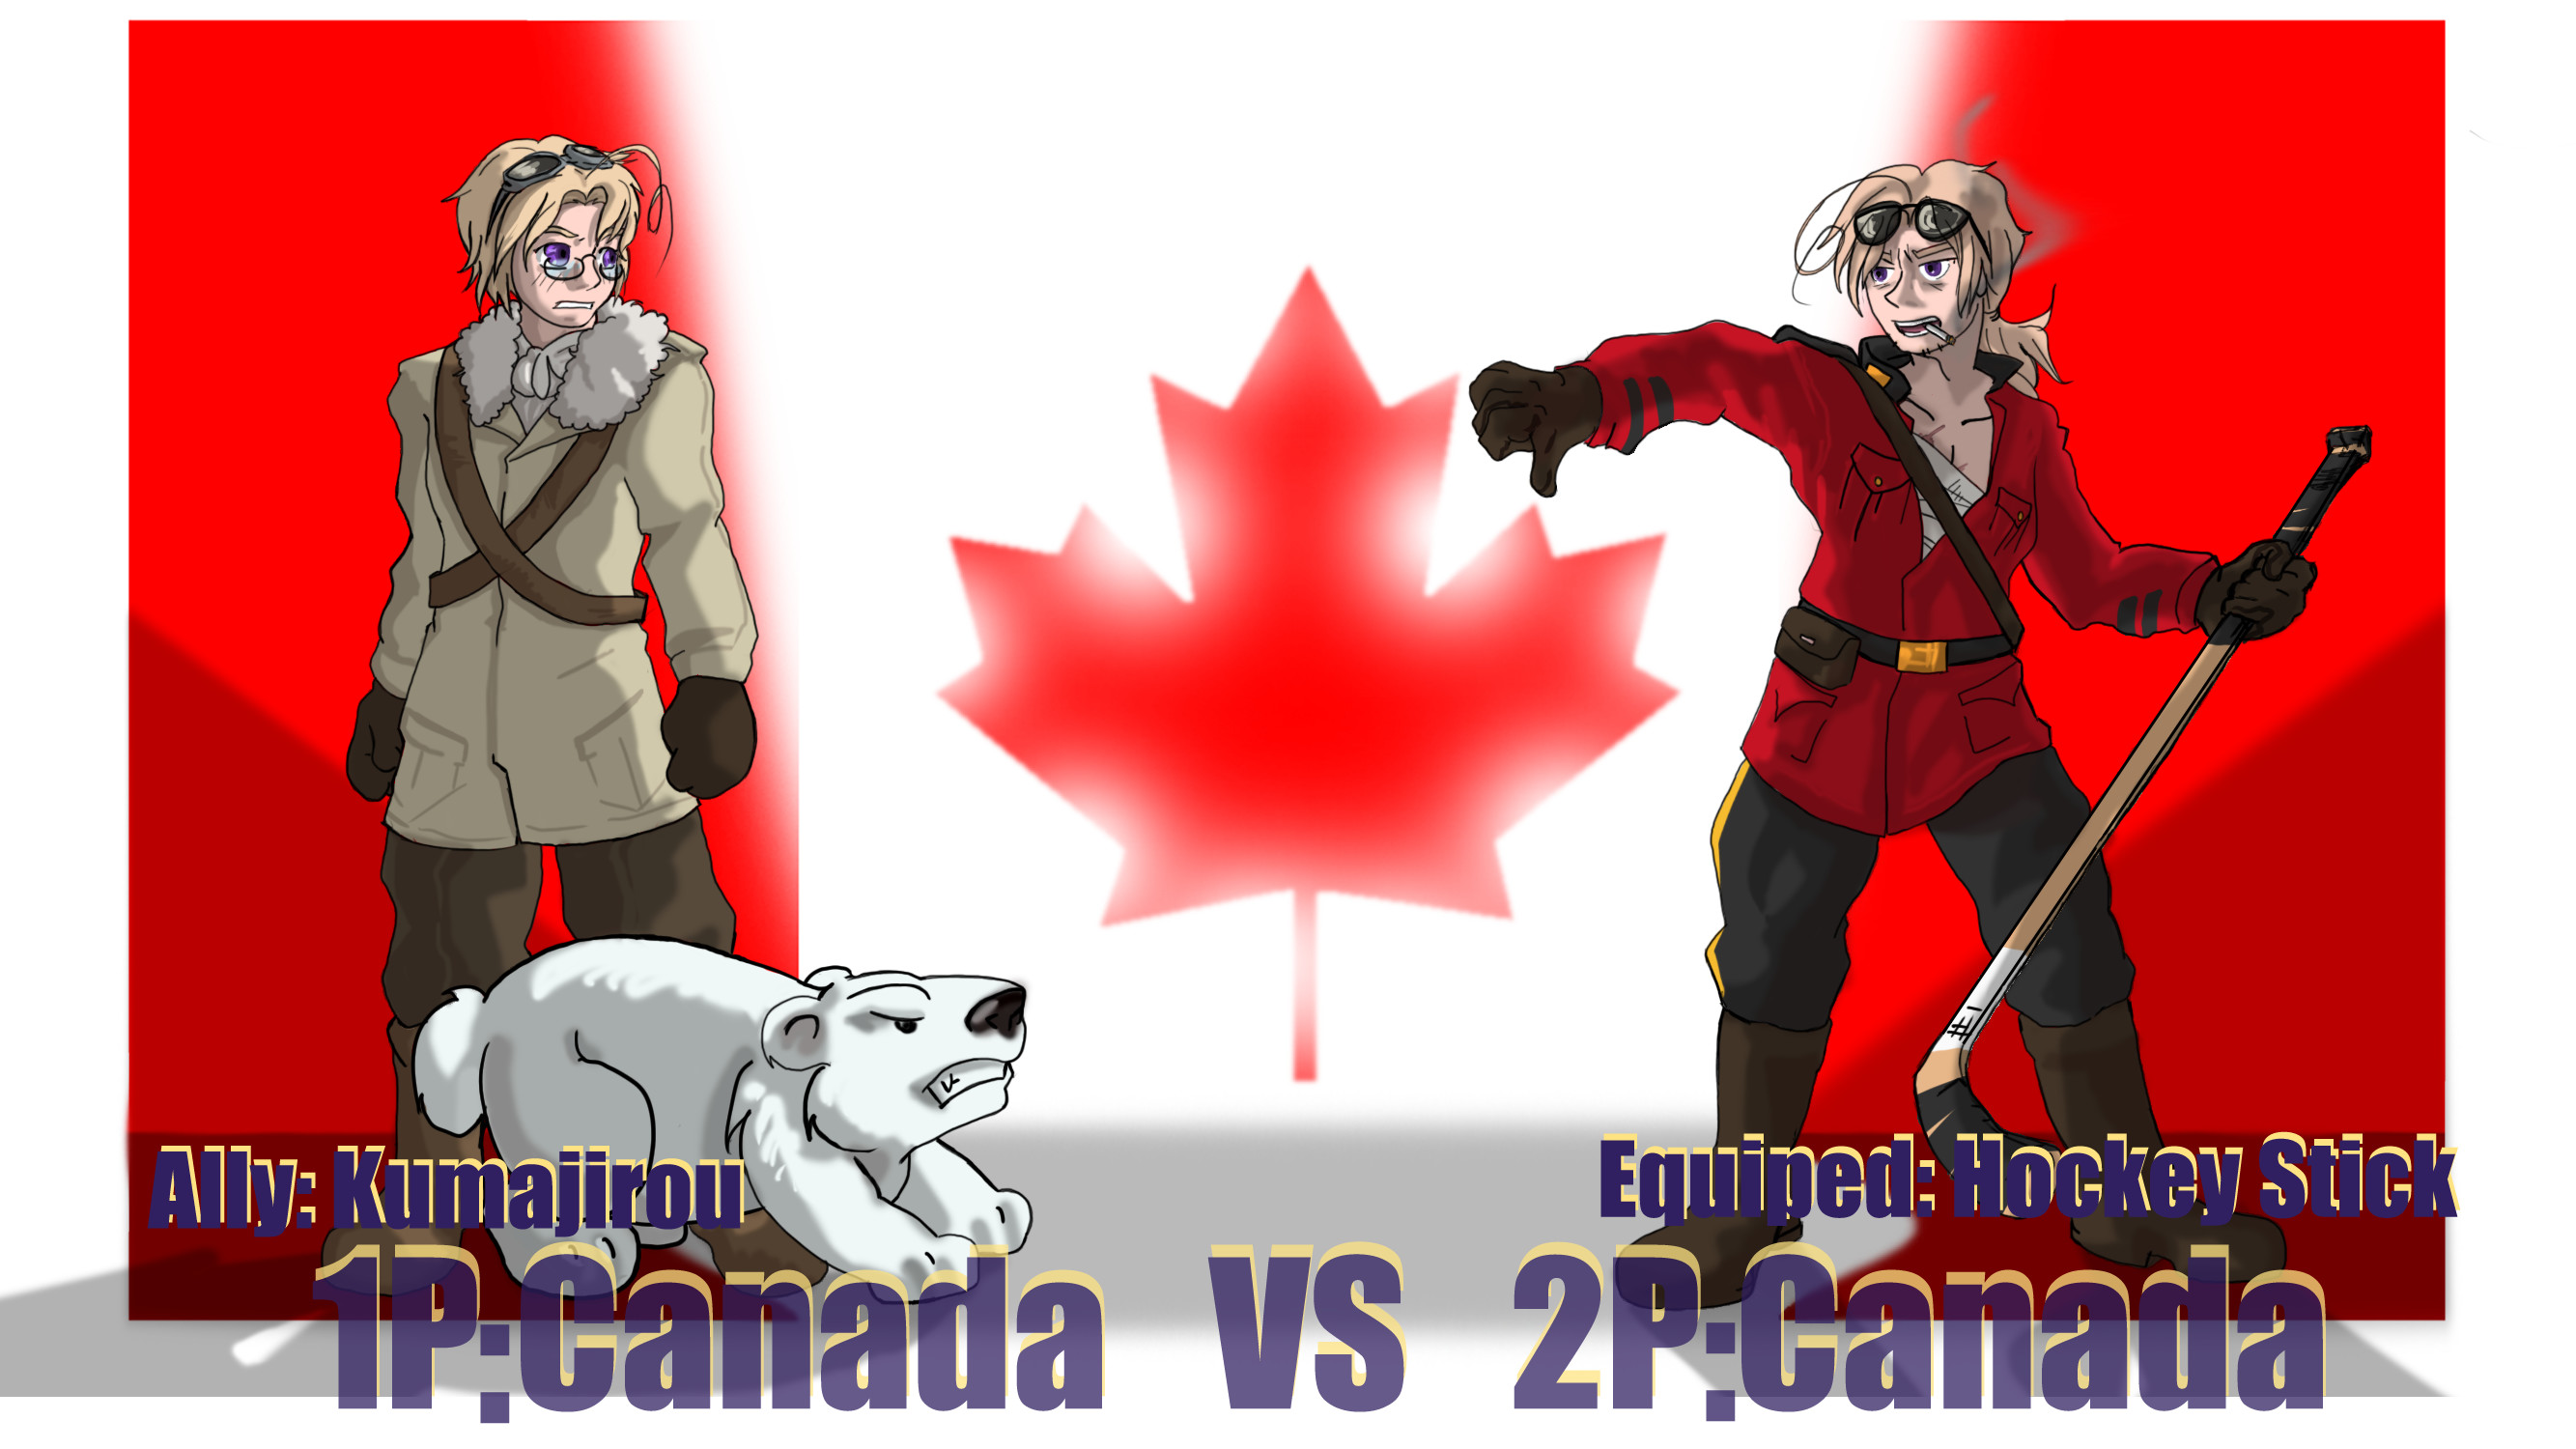 2667x1500 Hetalia fights pcanada sagealina on deviantart png  Hetalia 2p vs  1p